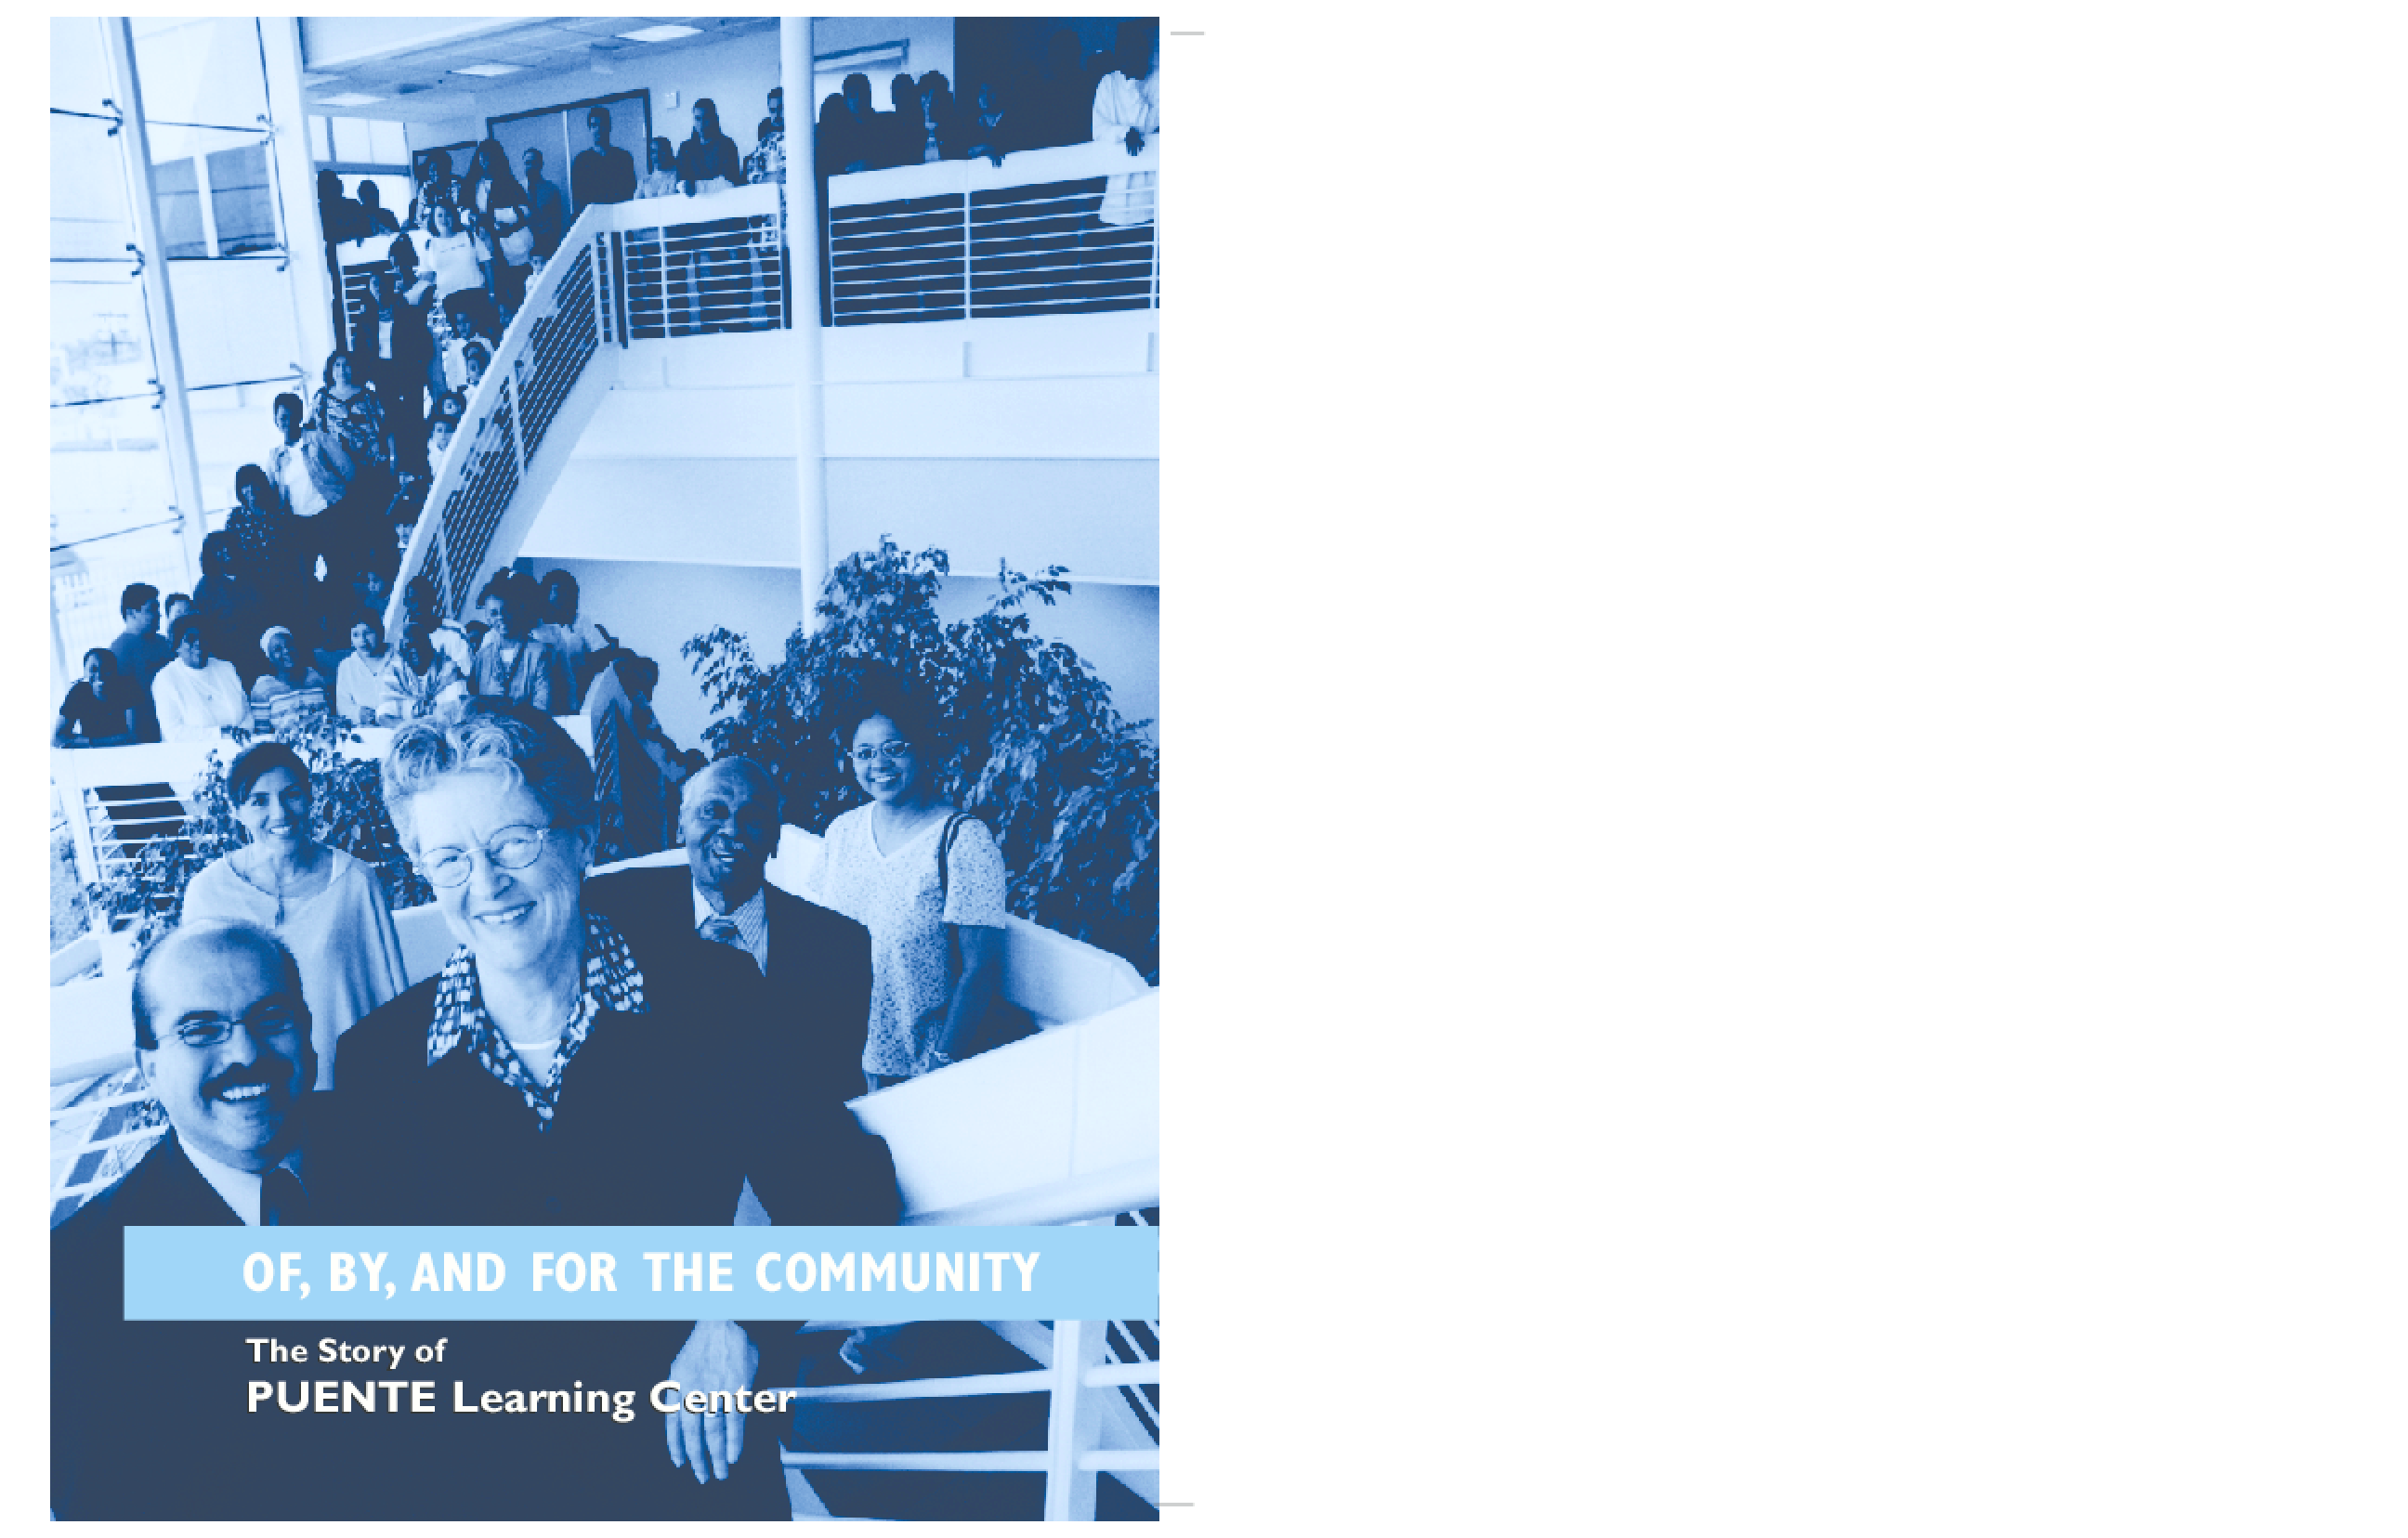 Of, By, and For the Community: The Story of PUENTE Learning Center